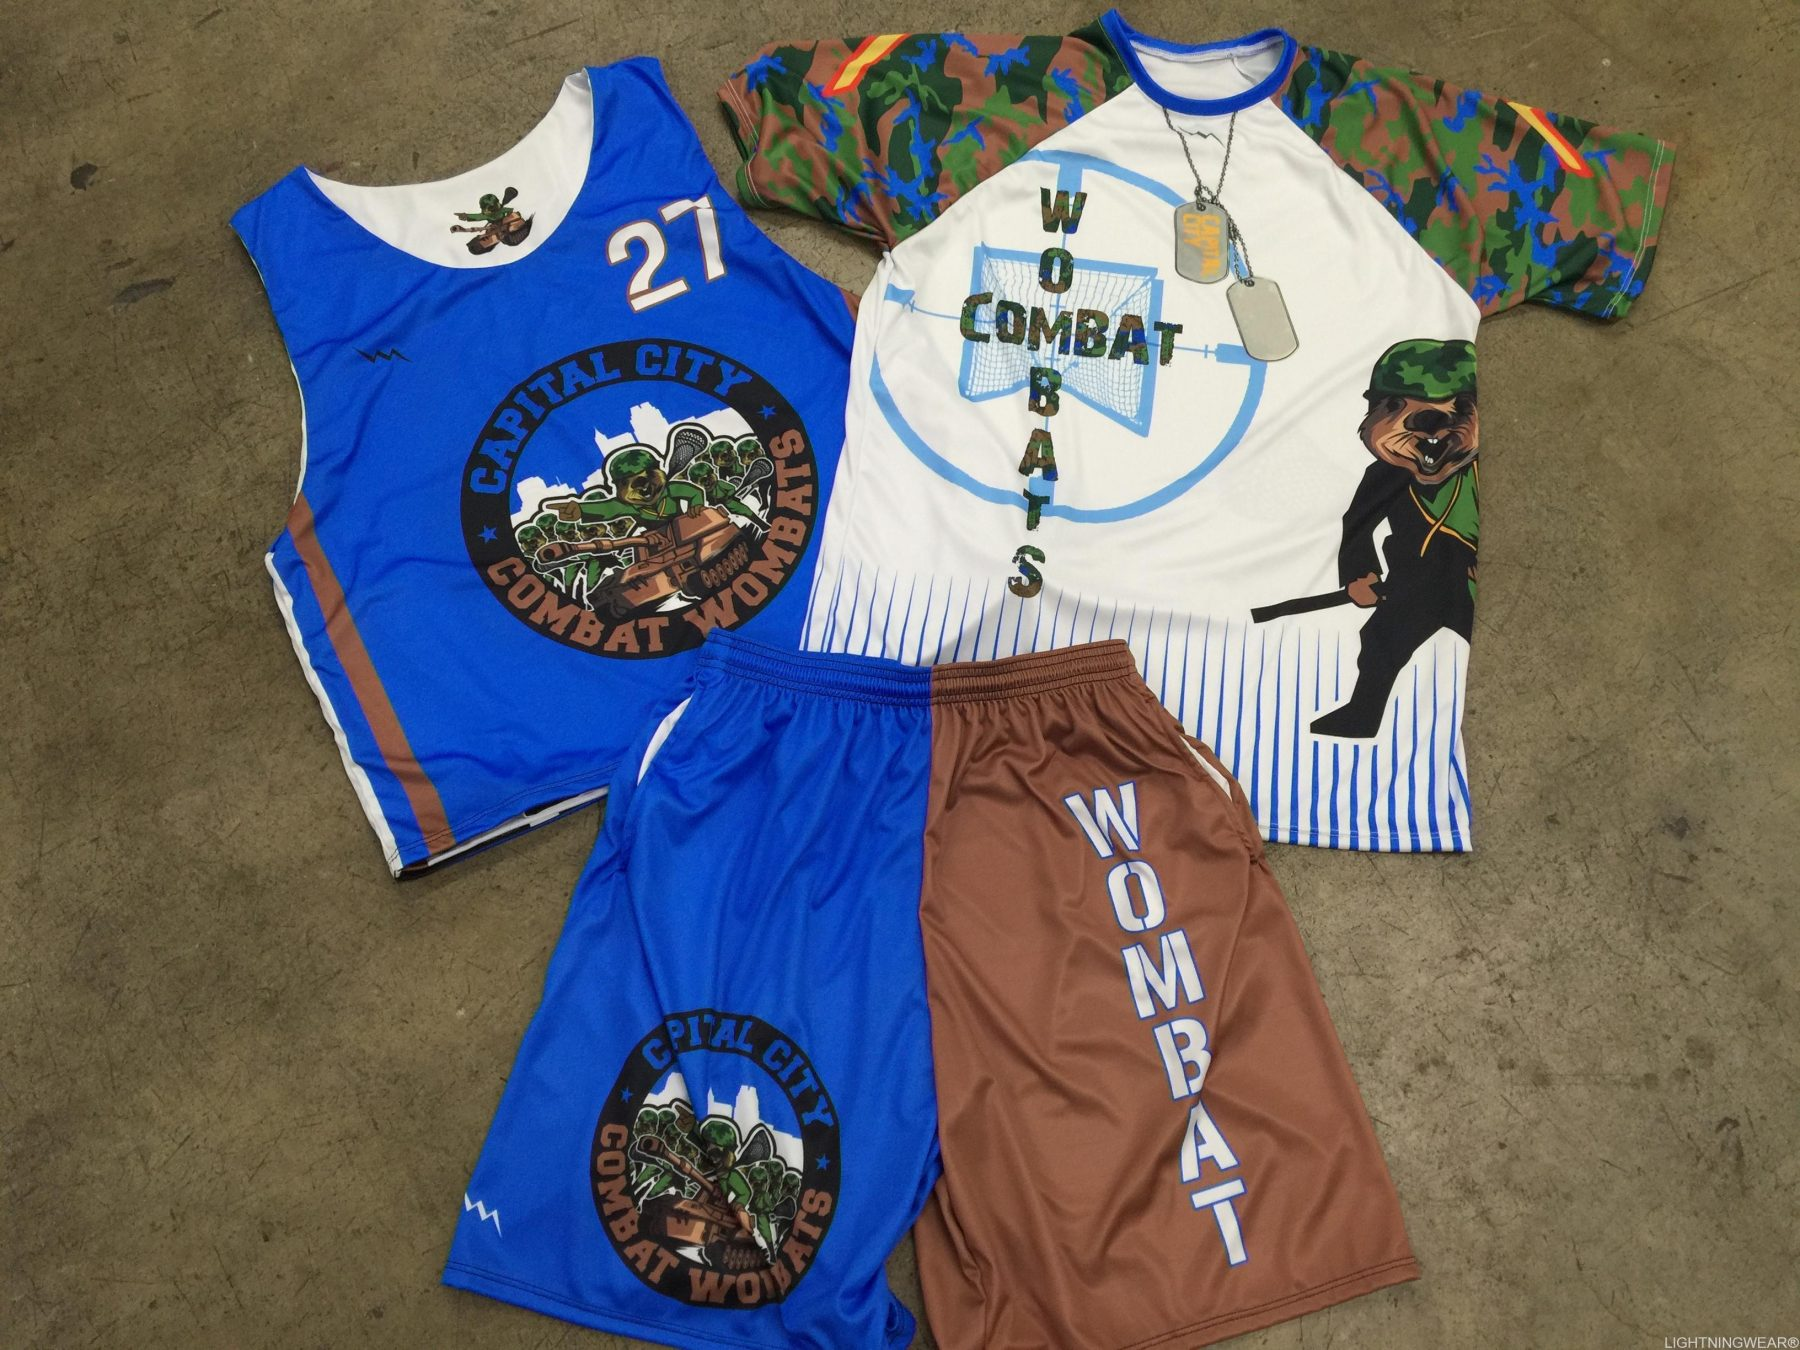 Lacrosse Uniforms in North Carolina